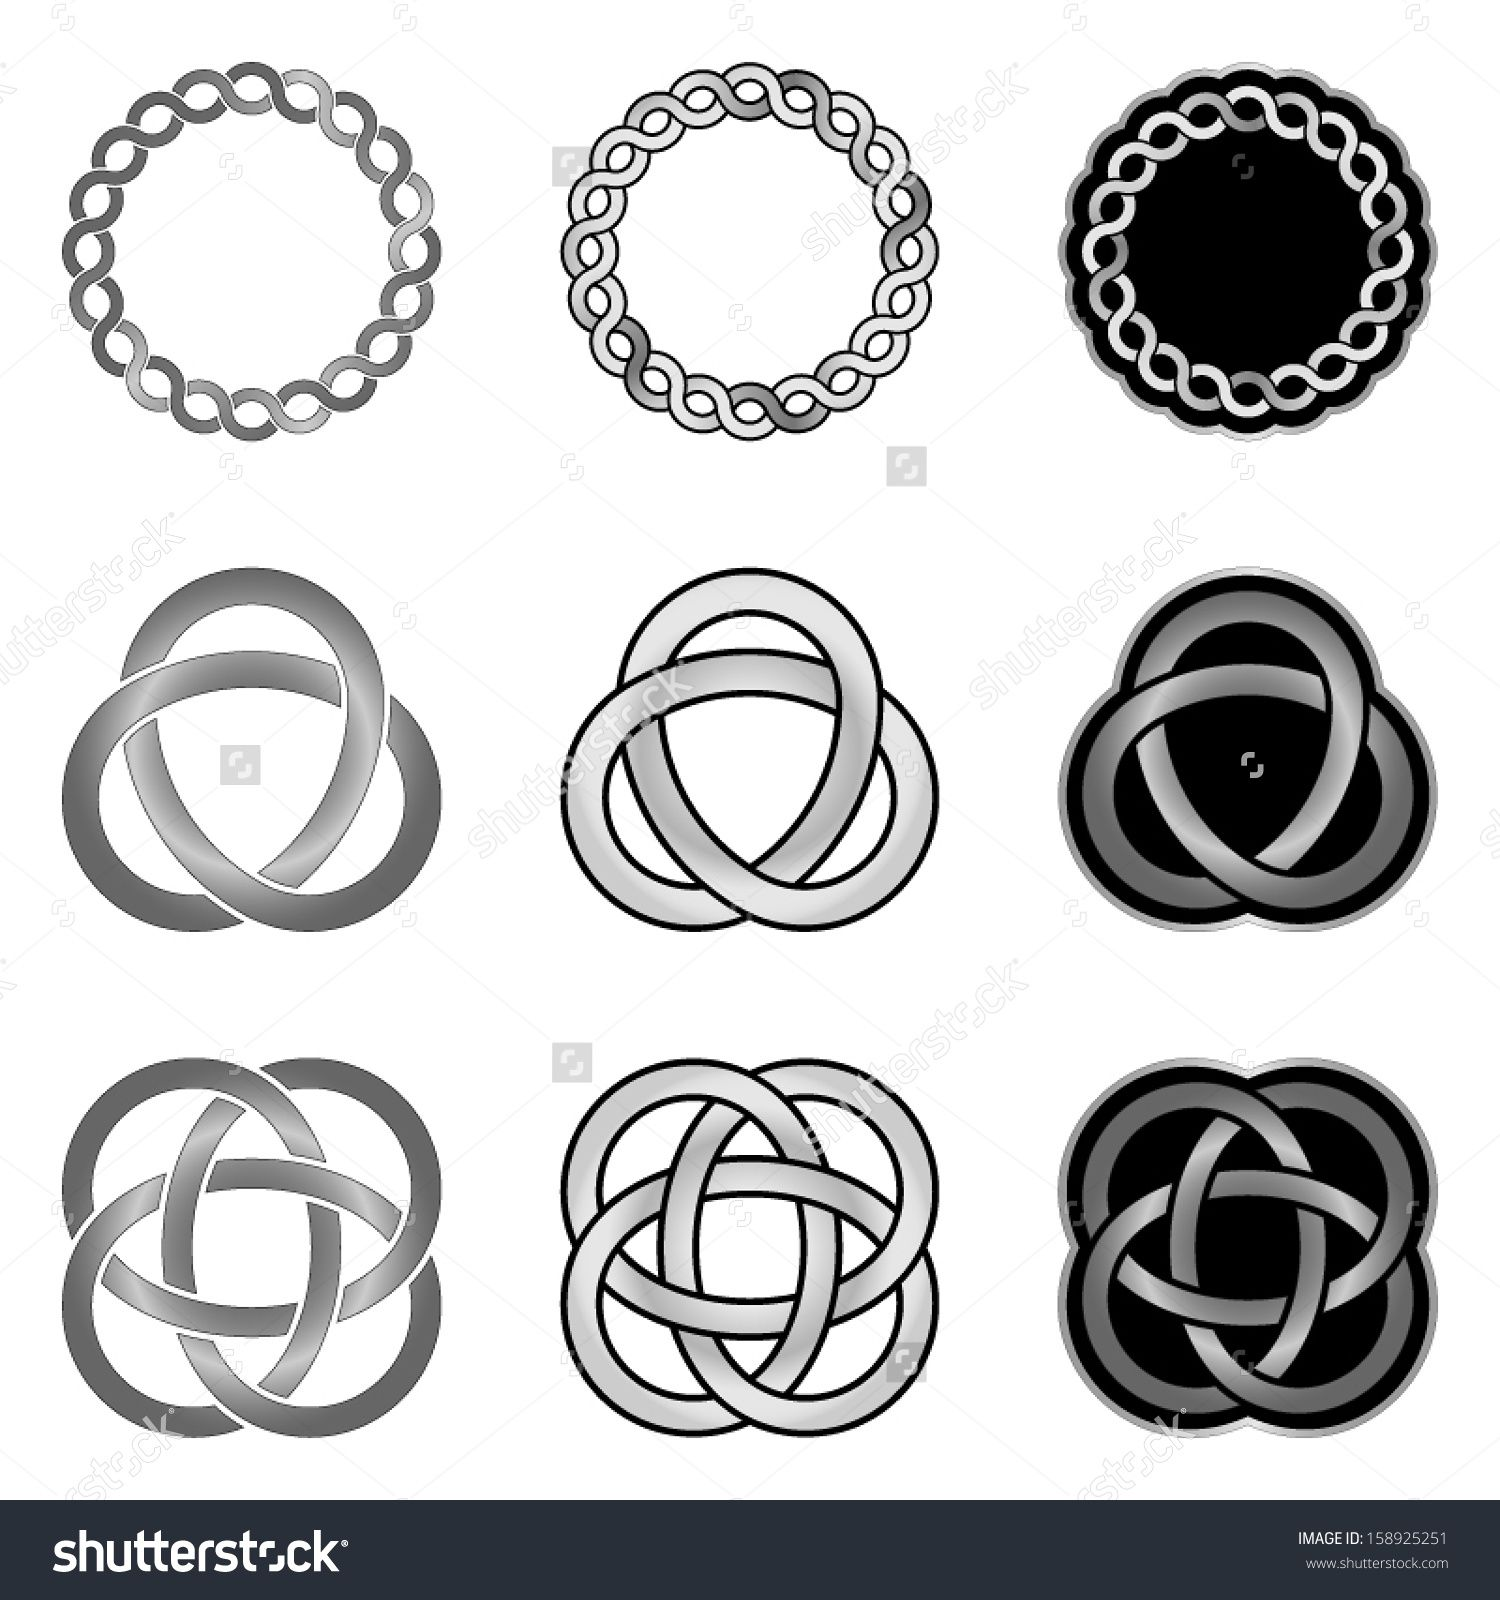 Celtic Knot Design Elements Patterns Models And Templates Stock